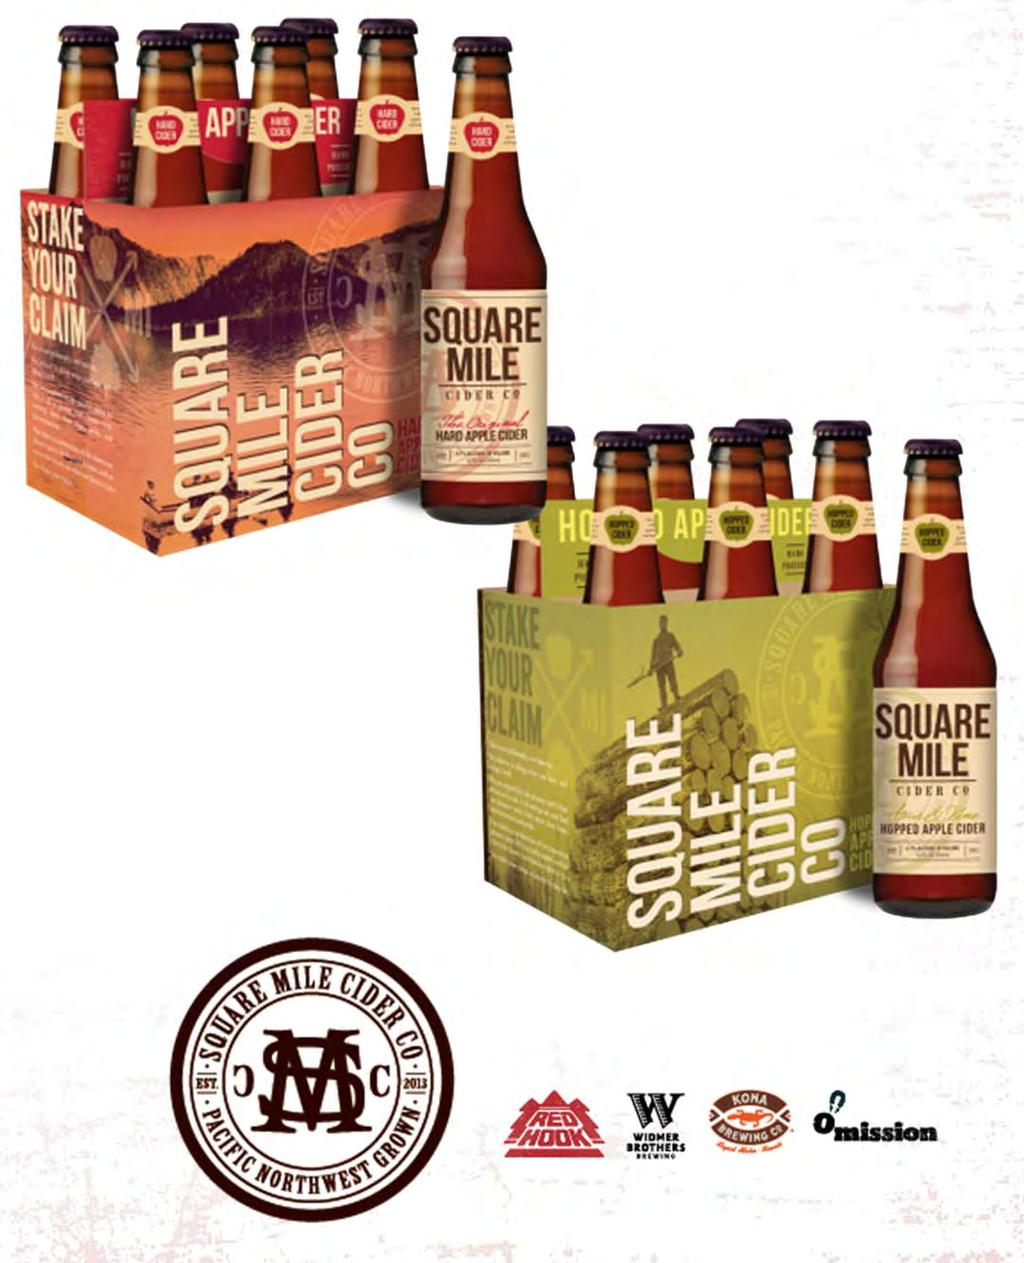 Appendix Square Mile Cider Company 2013 launch and expansion to 10 states Varietals: The